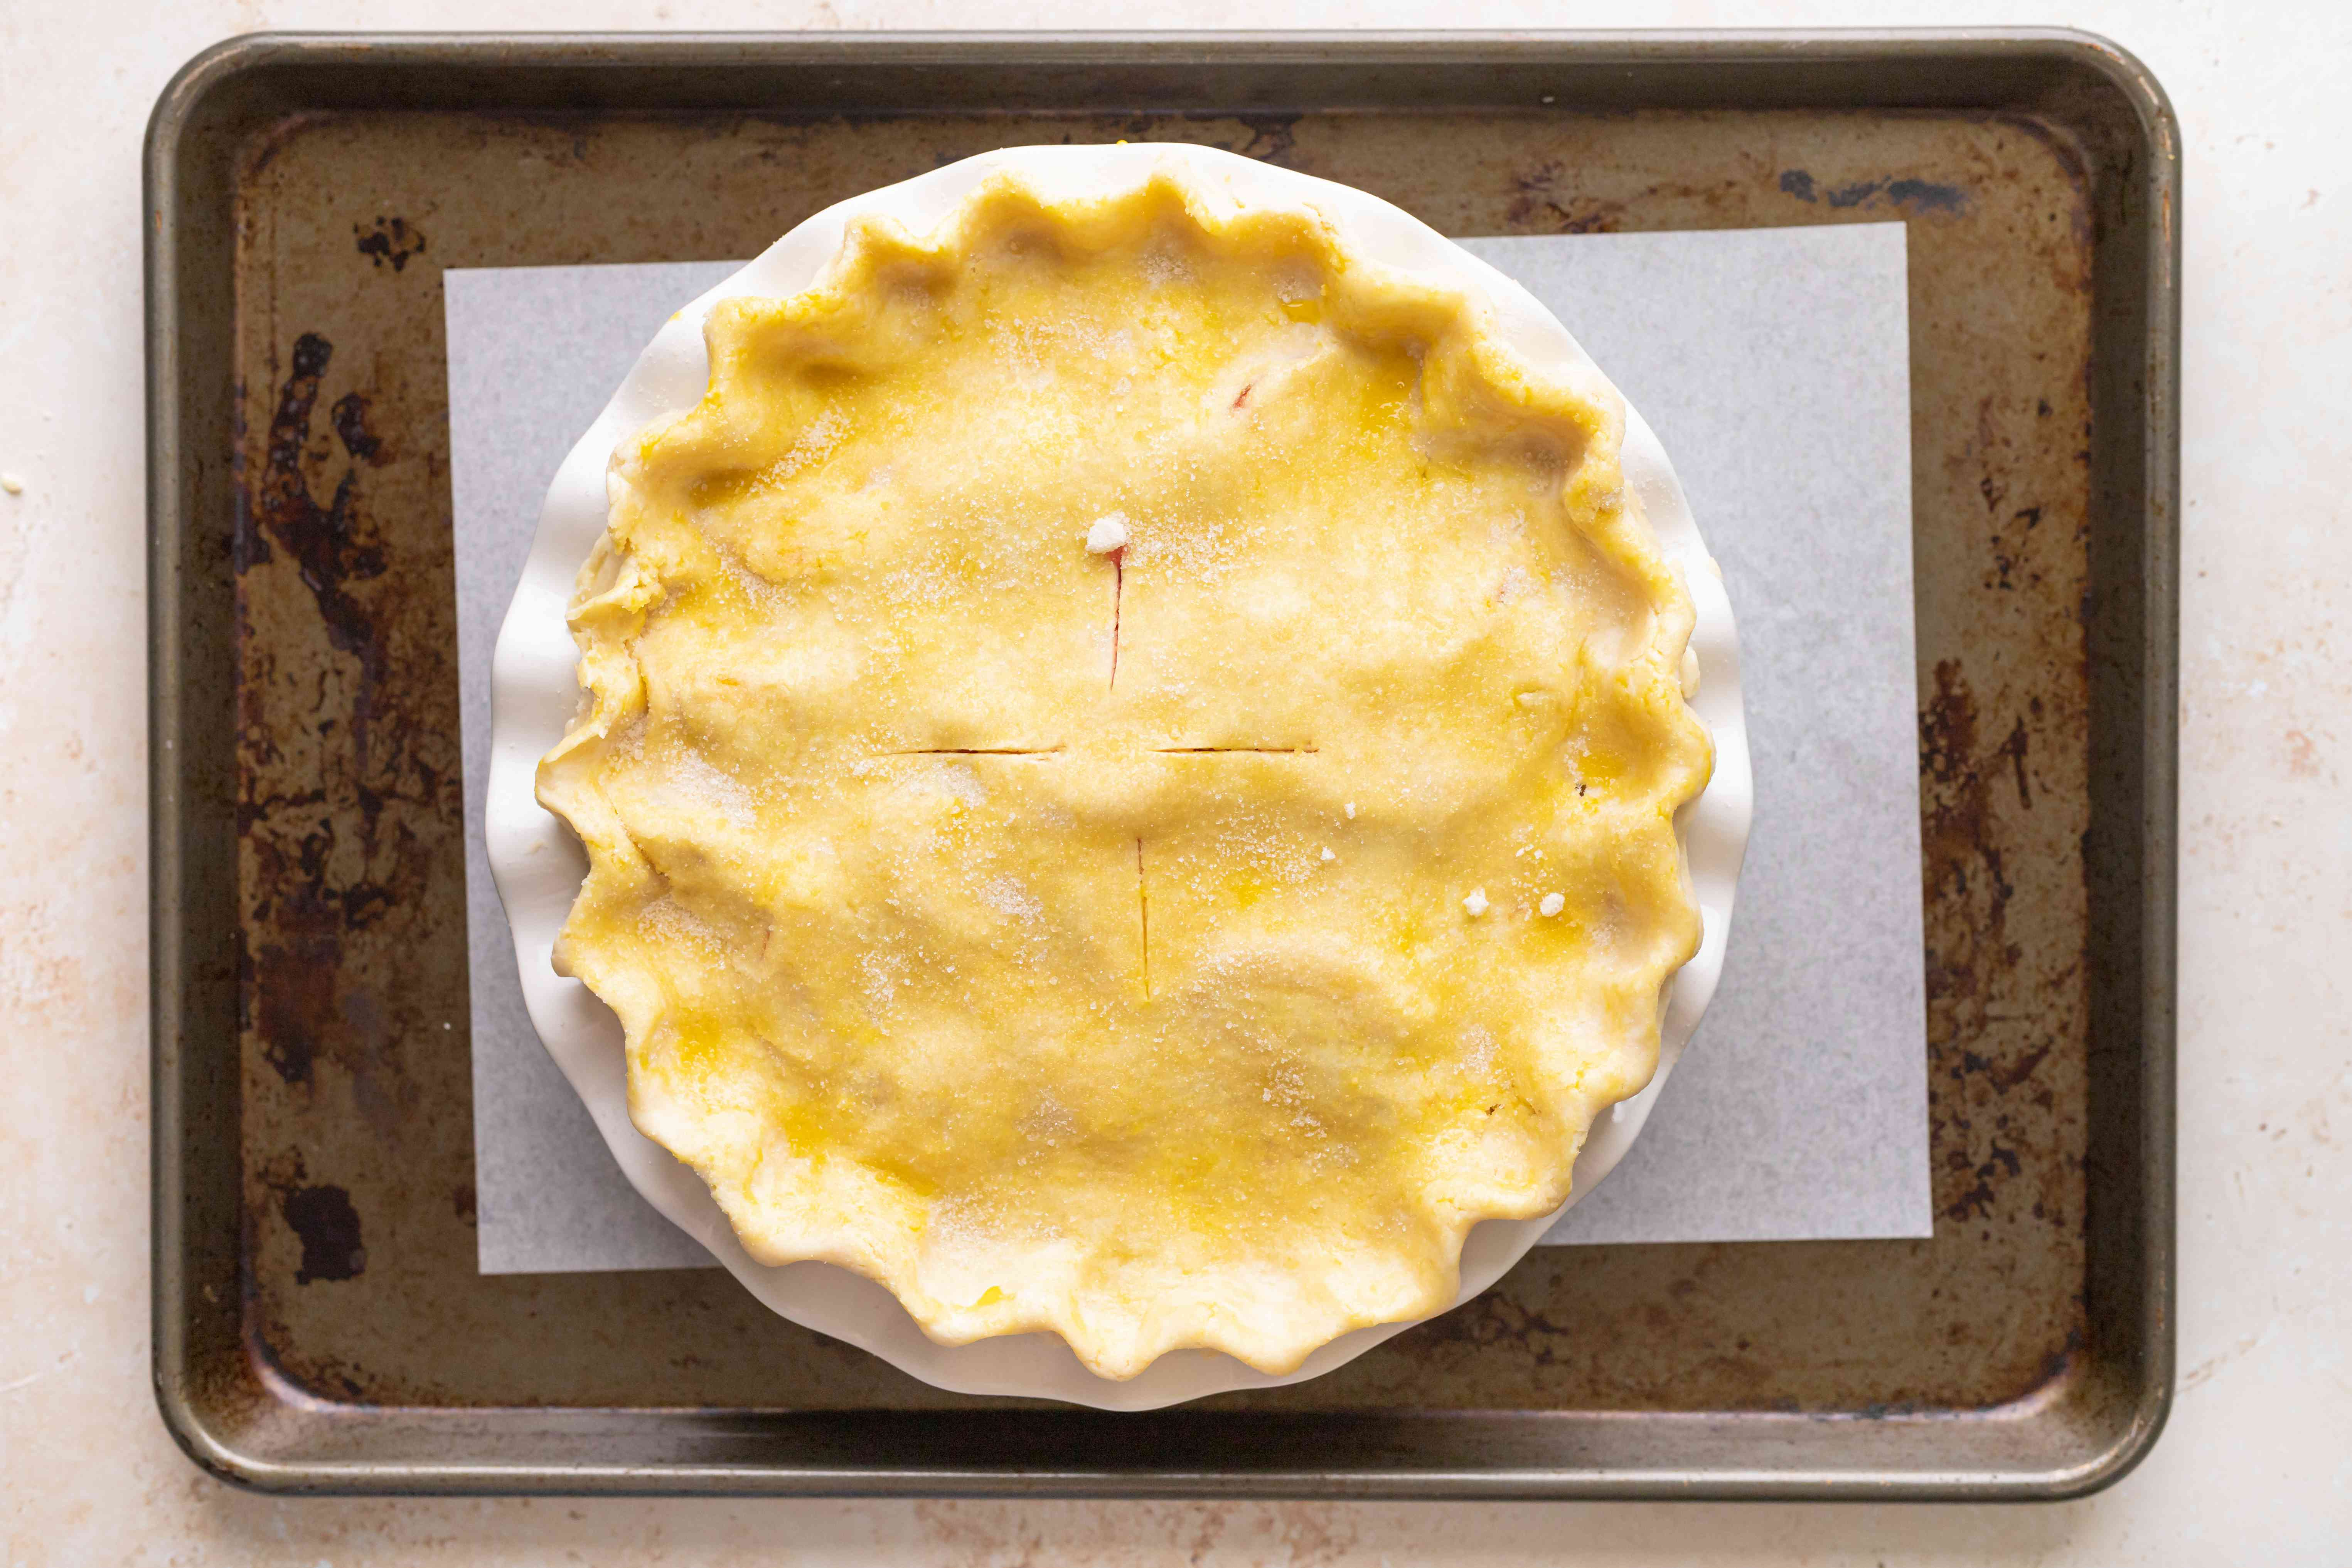 A stone fruit and berry pie on a baking sheet before baking.